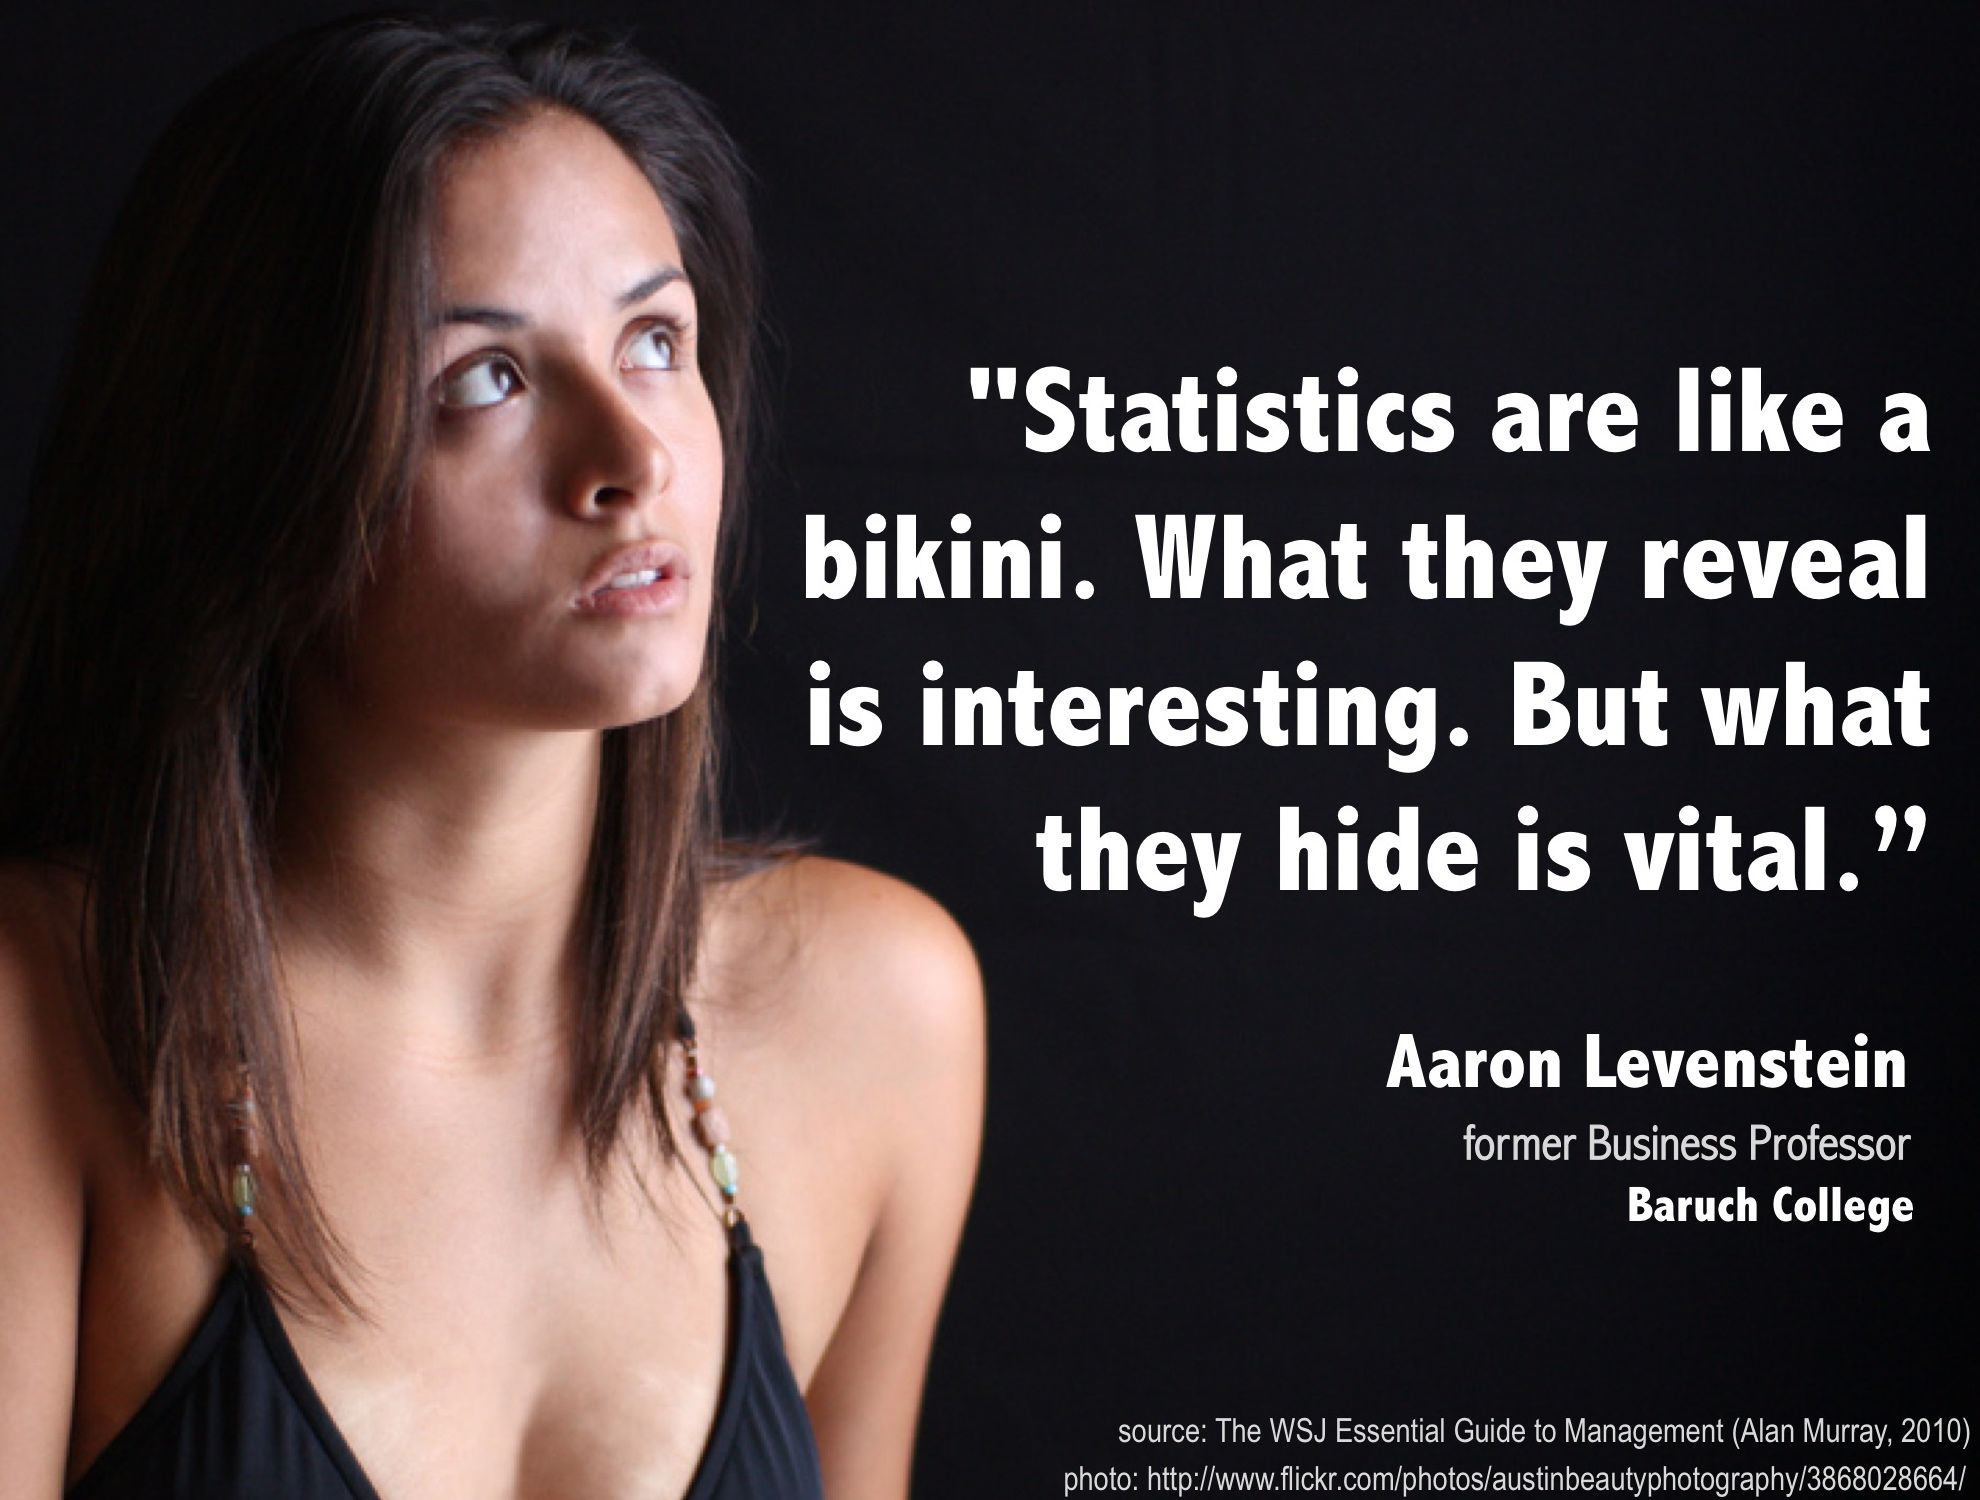 Statistics are like a bikini. What they reveal is interesting. But what they hide is vital. - Aaron Levenstein